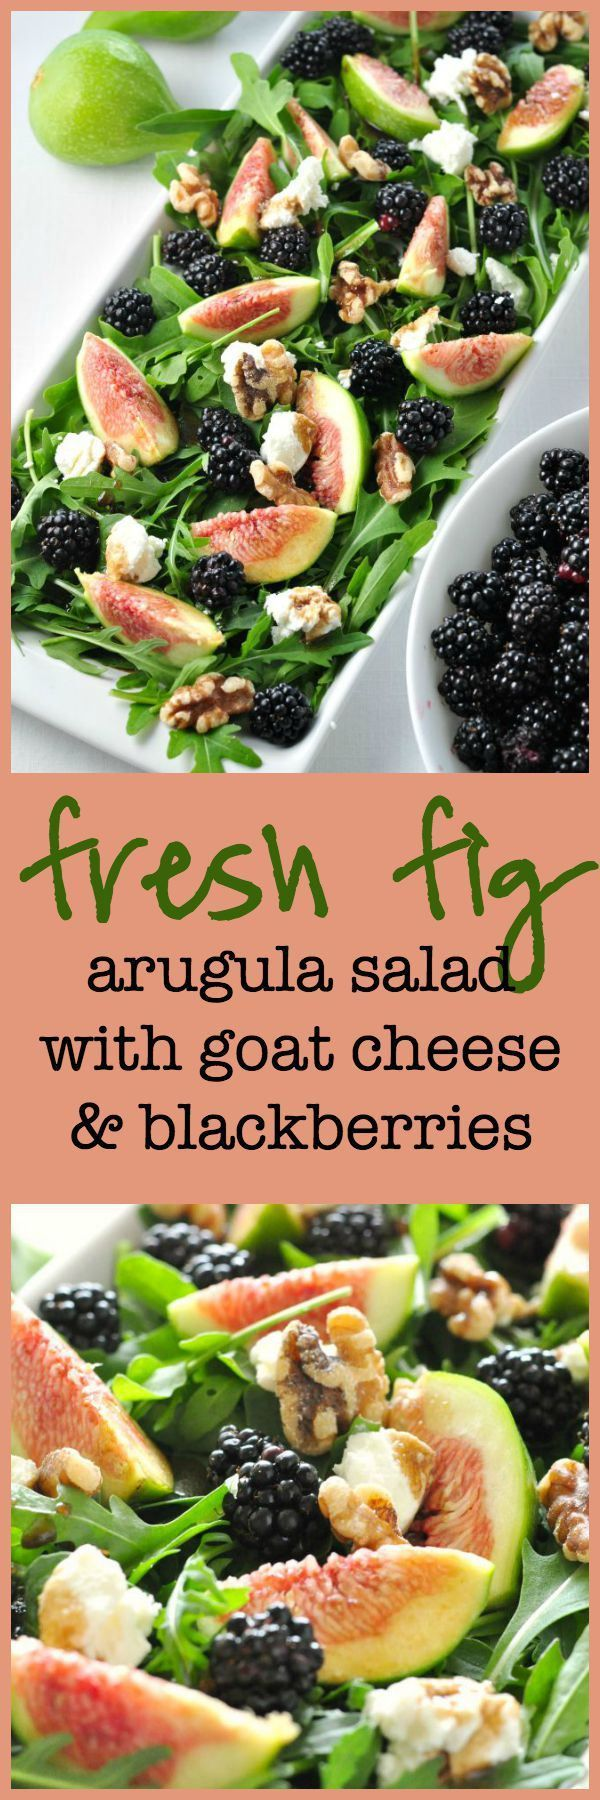 Fresh Fig Arugula Salad with Blackberries, Goat cheese and Walnuts. Full of anti-oxidants! http://www.flavourandsavour.com/fresh-fig-arugula-salad-with-blackberries/